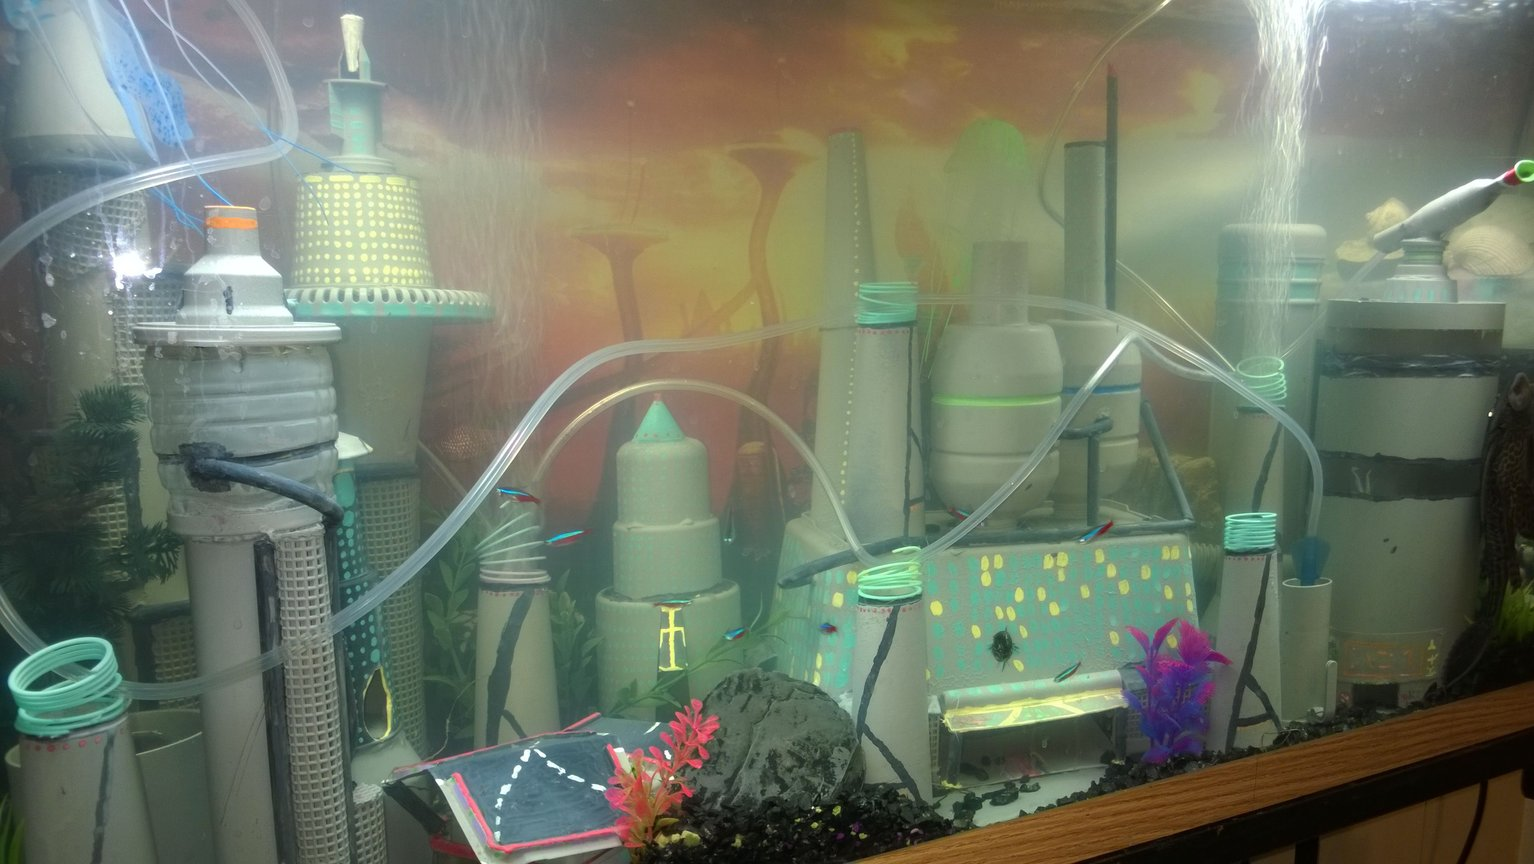 45 gallons freshwater fish tank (mostly fish and non-living decorations) - My space city